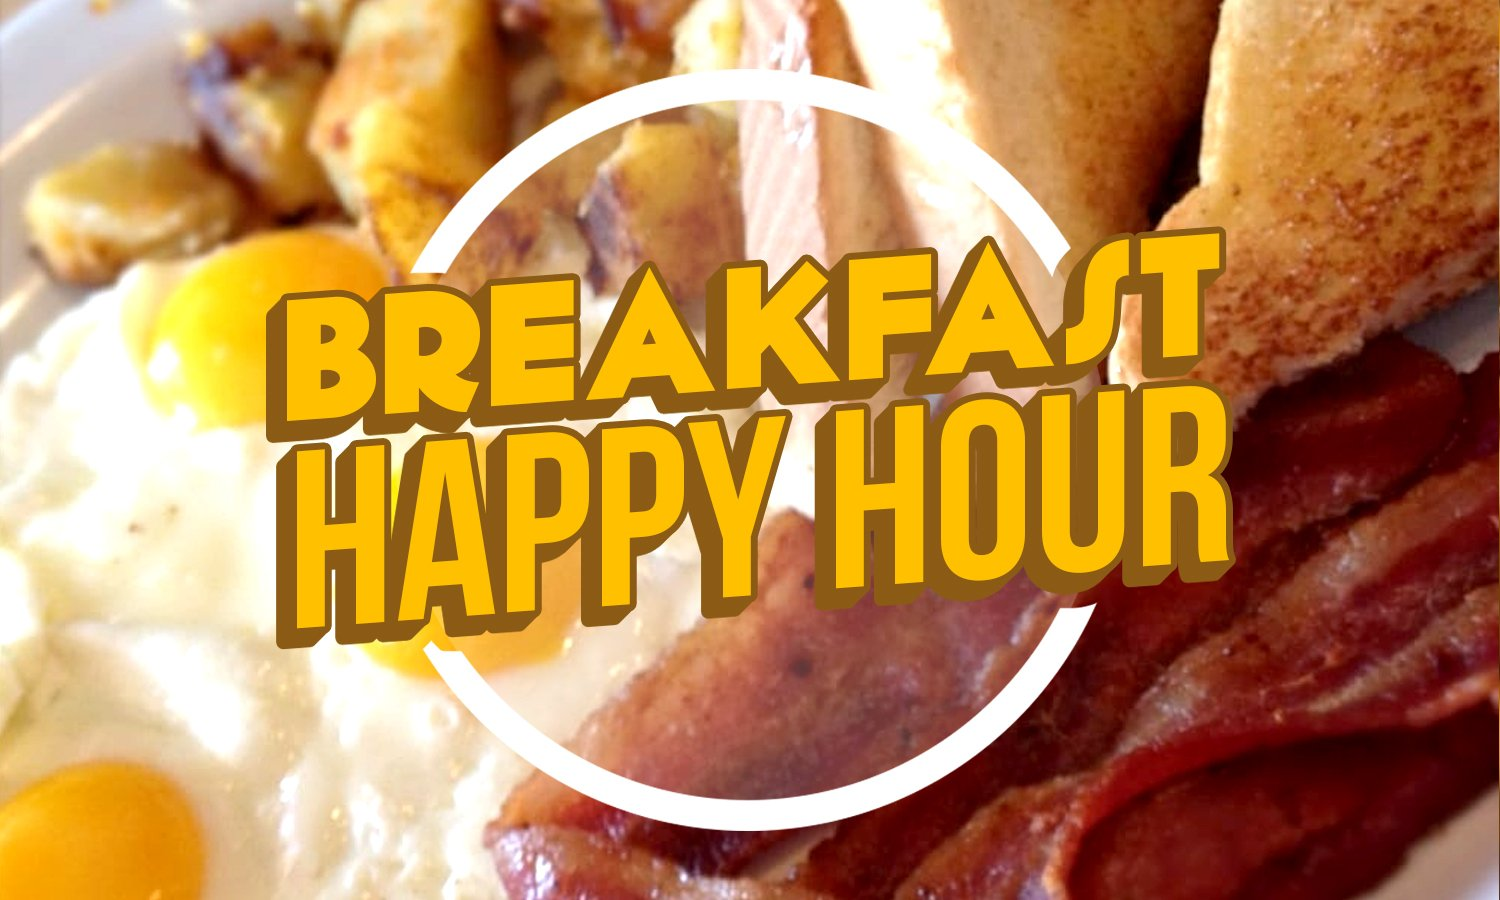 Breakfast Happy Hour Food